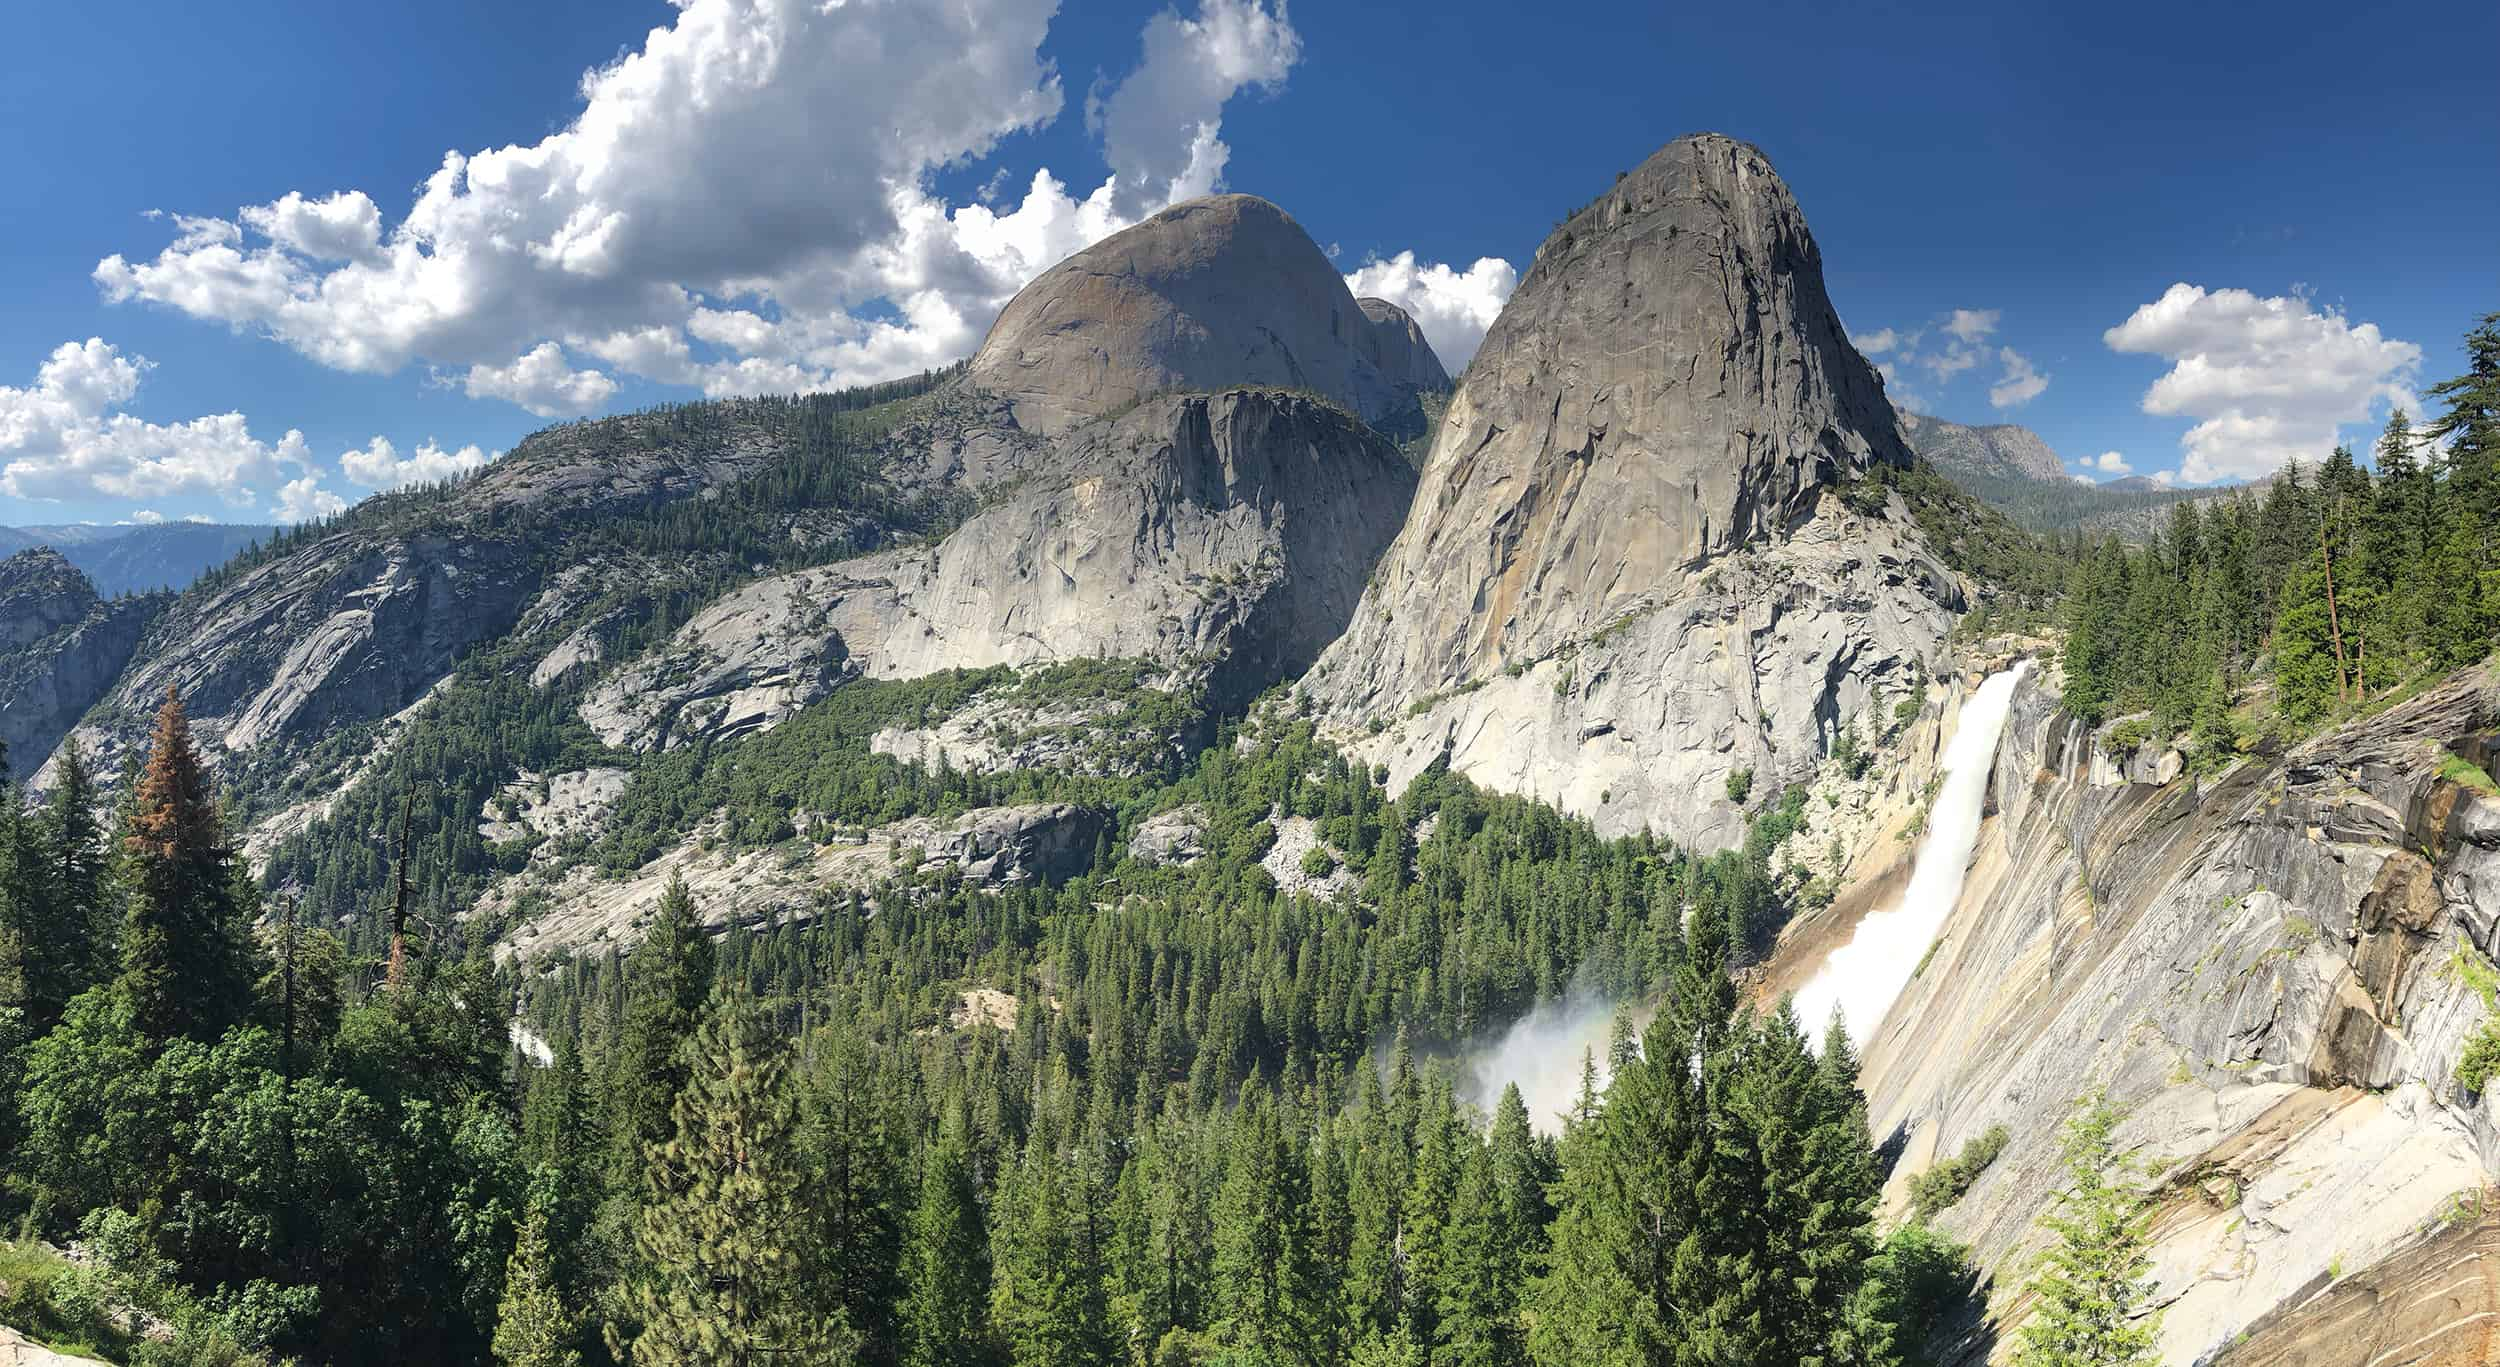 The Most Amazing, Stunning and Difficult Waterfall Hiking Trails in Yosemite National Park